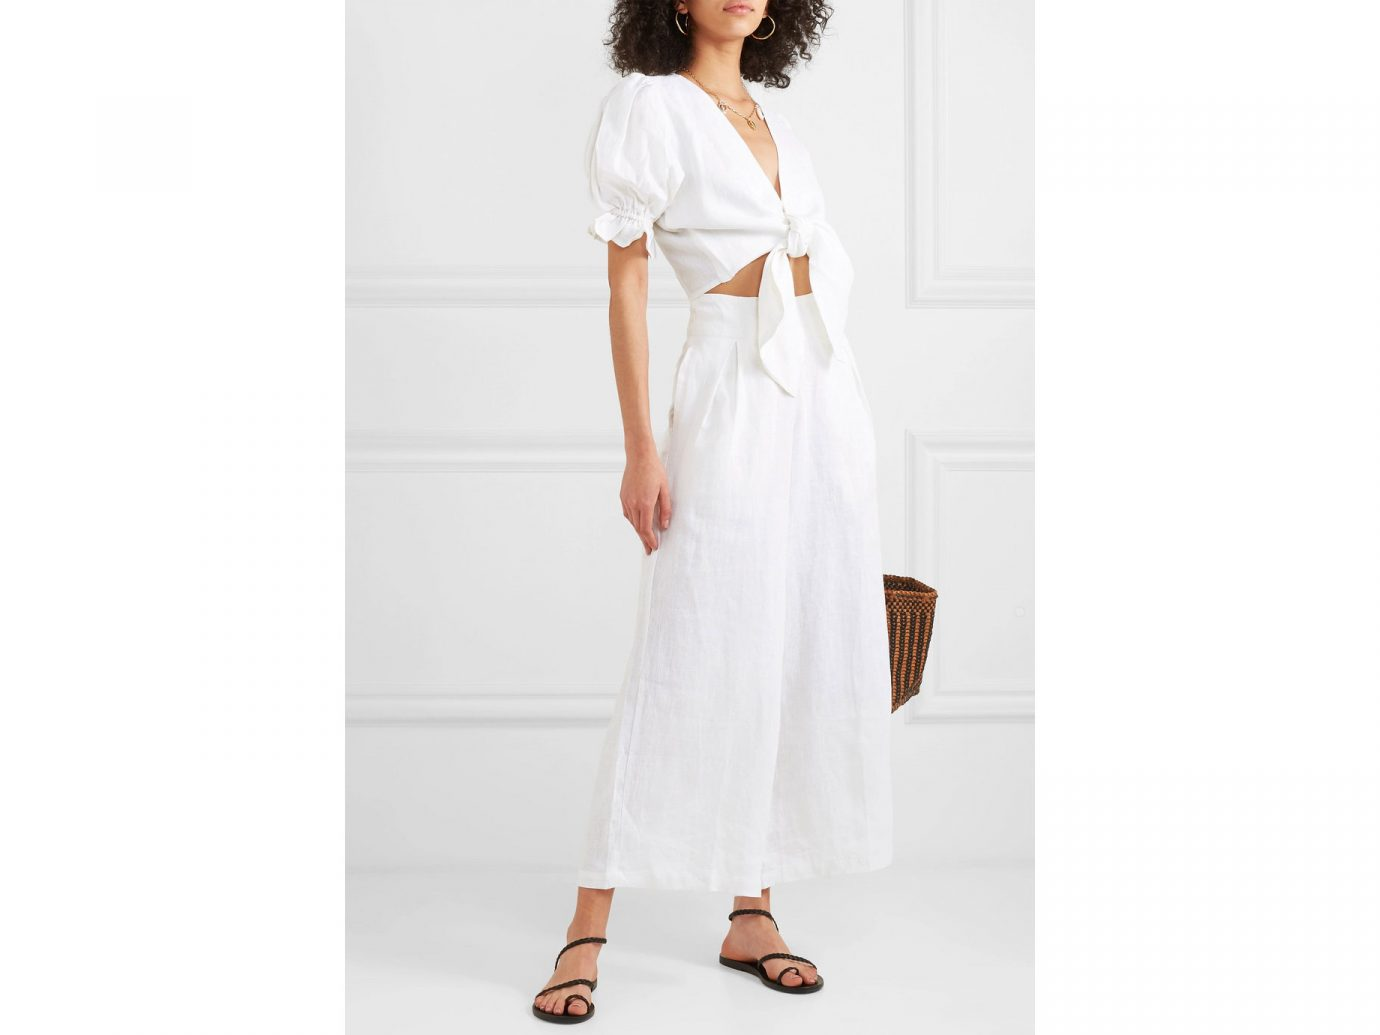 fb0e245927 18 Cute Beach Cover-Ups to Rock This Summer (2019) | Jetsetter